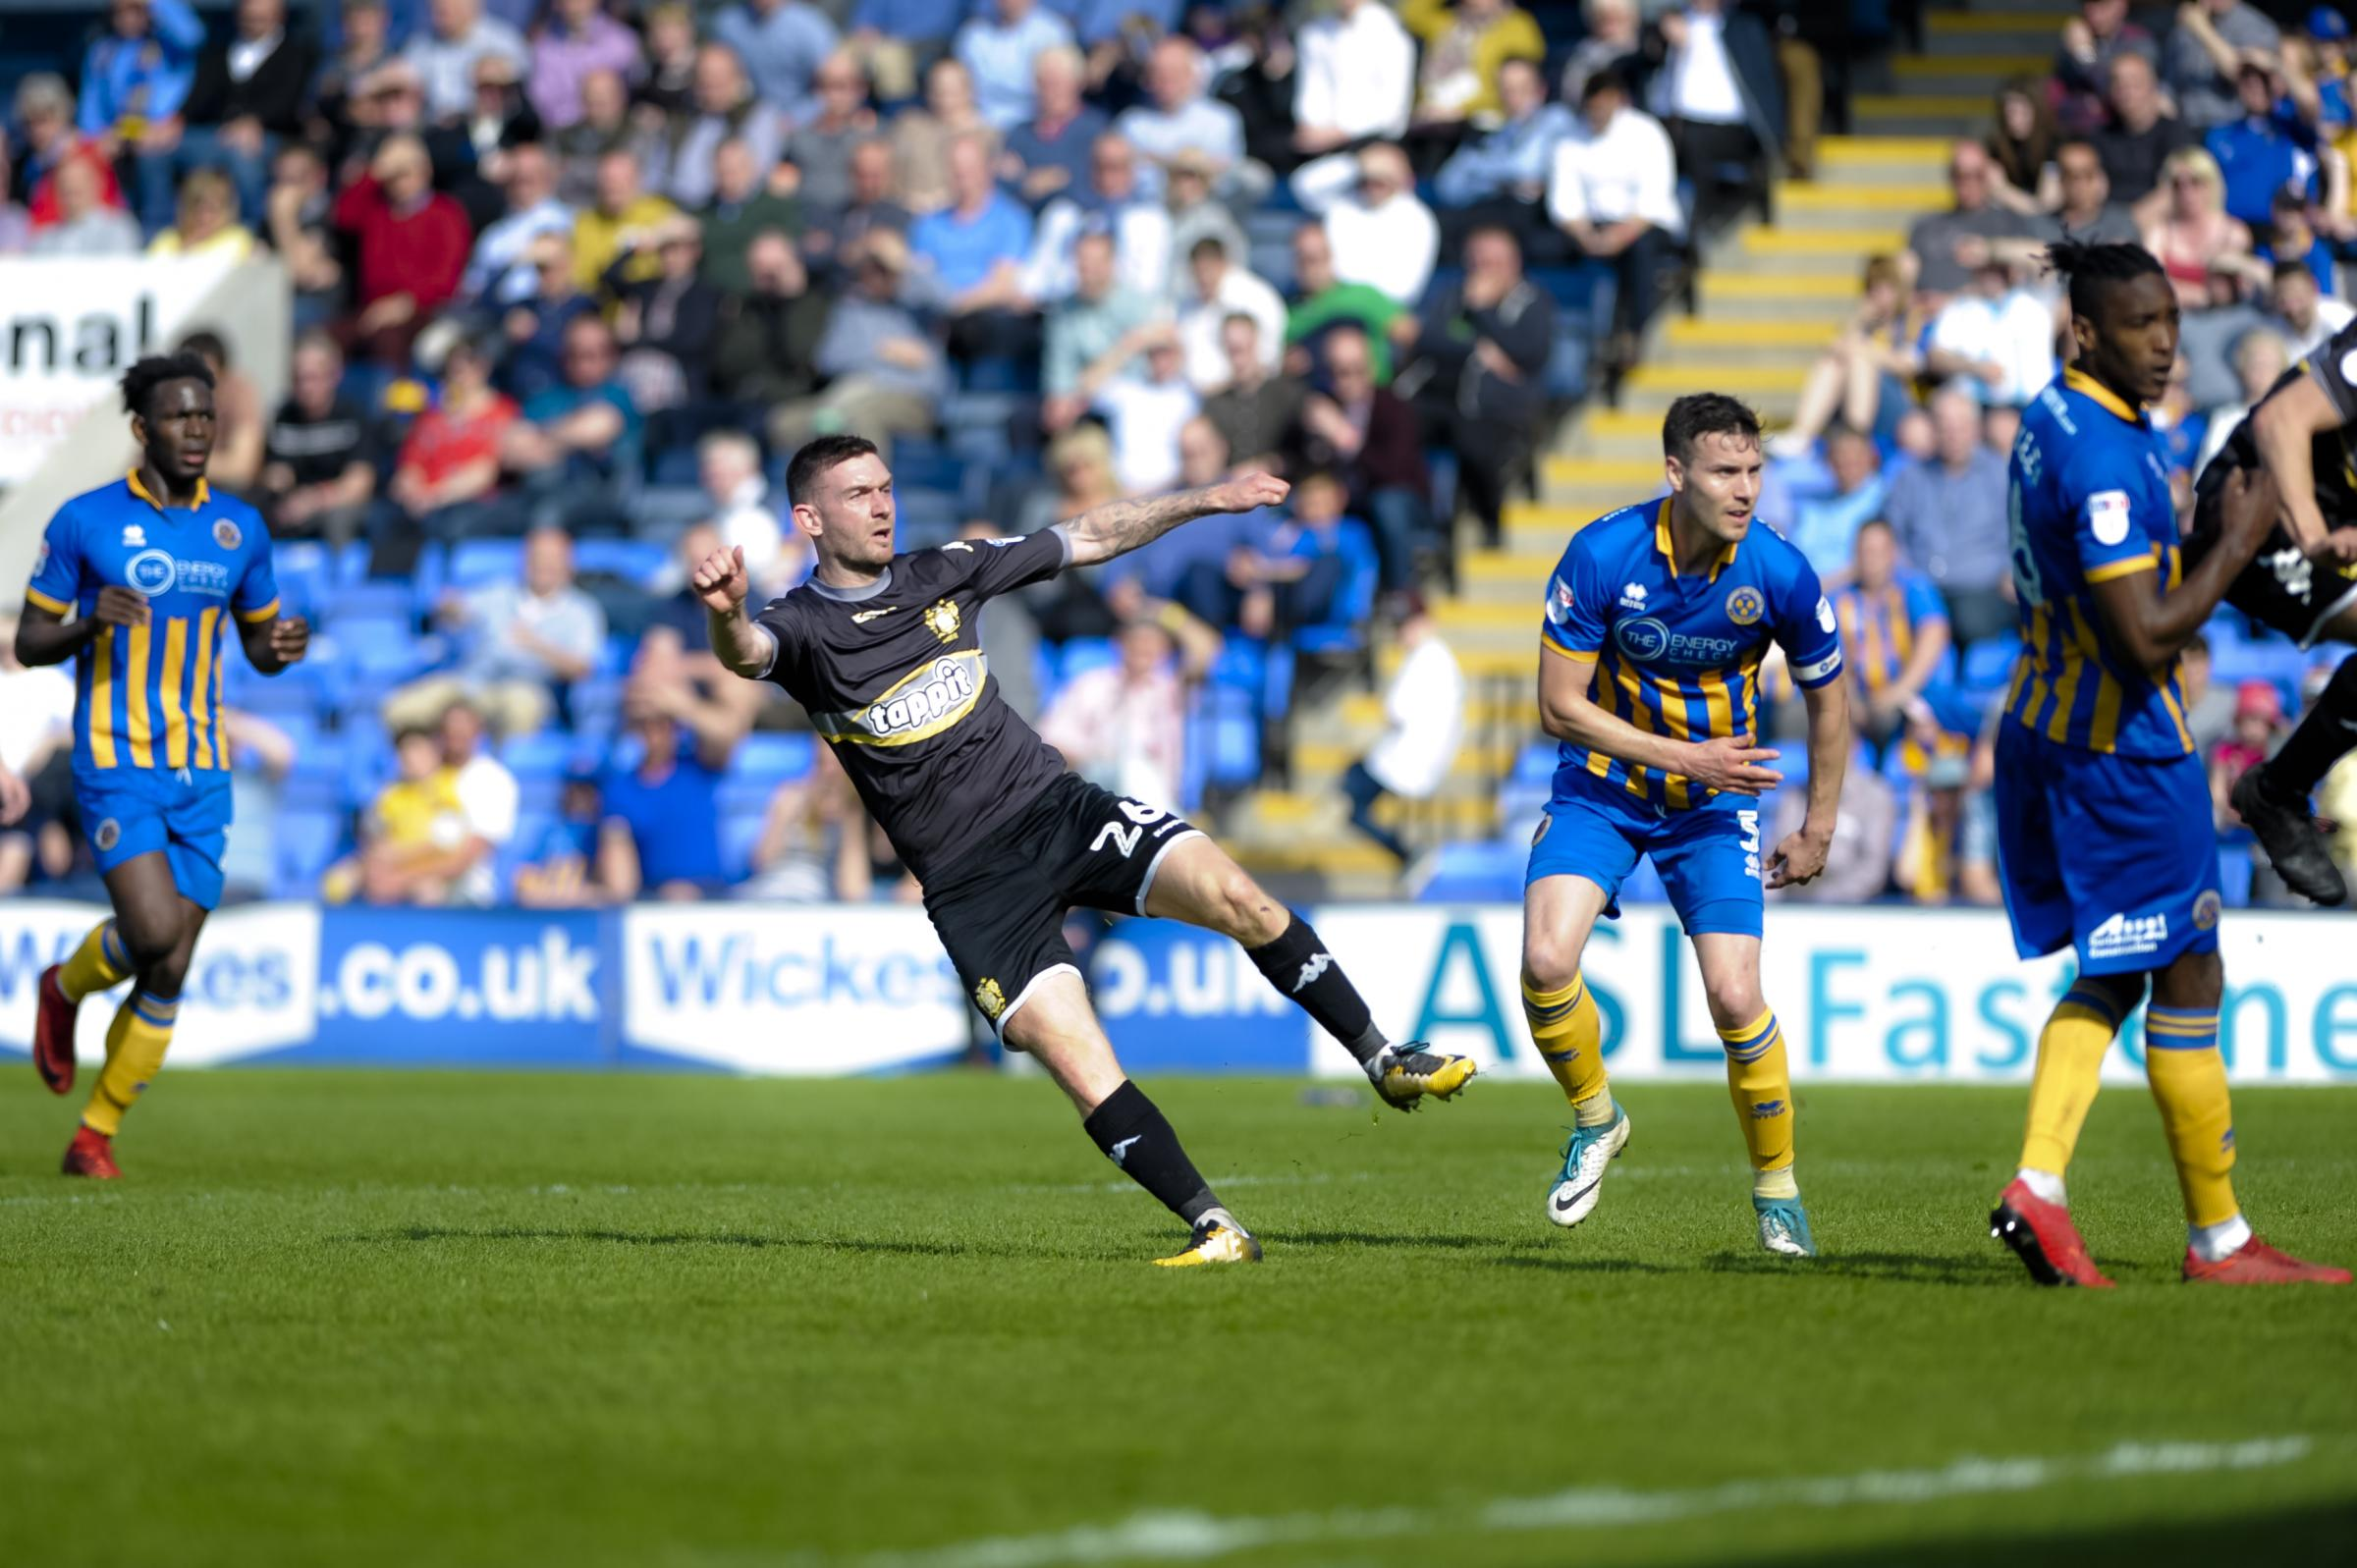 Bury midfielder Jay O'Shea equalises against Shrewsbury Town. Picture by Andy Whitehead